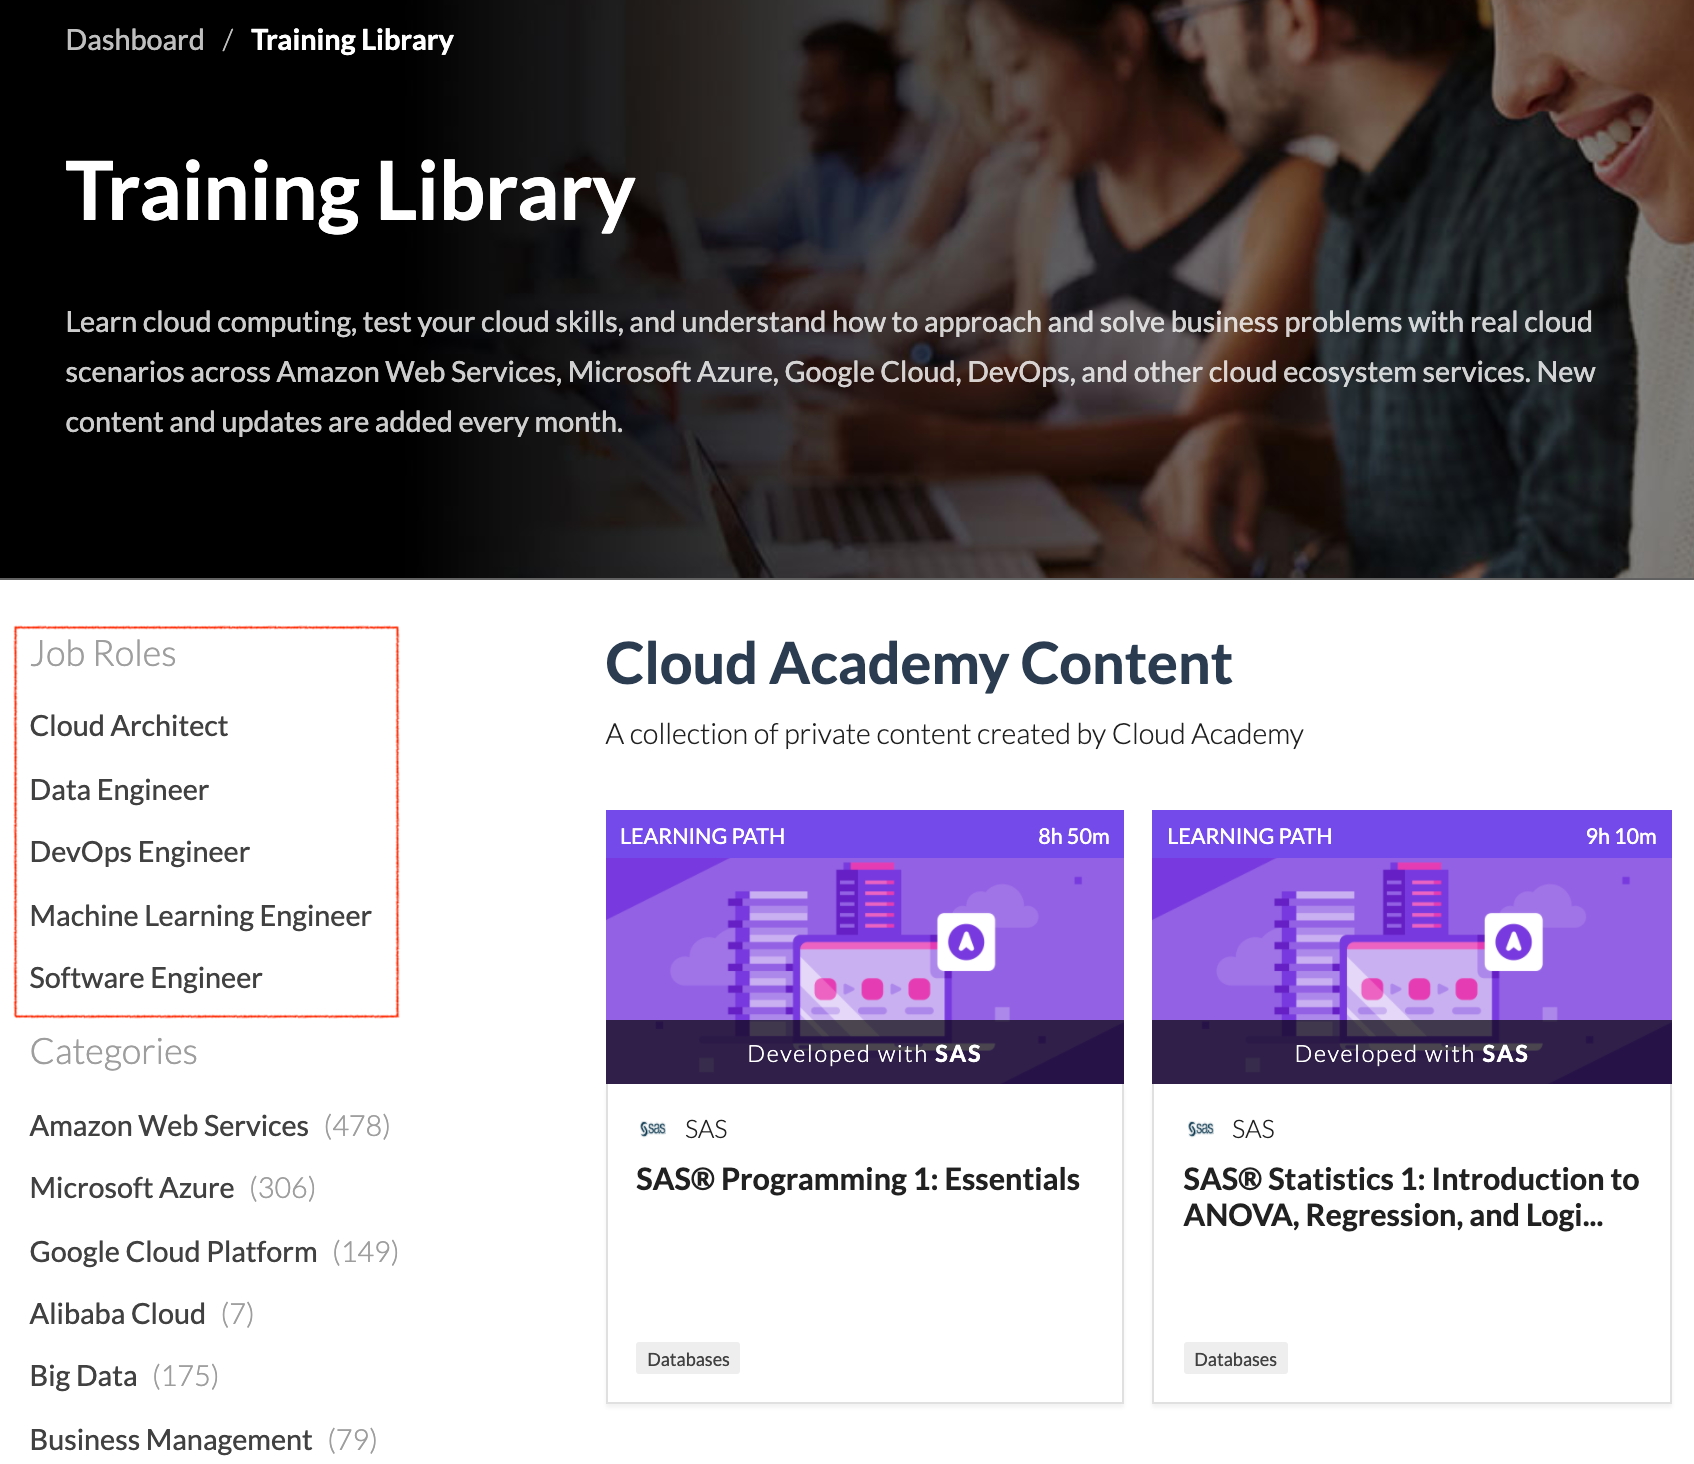 Job Roles in Training Library